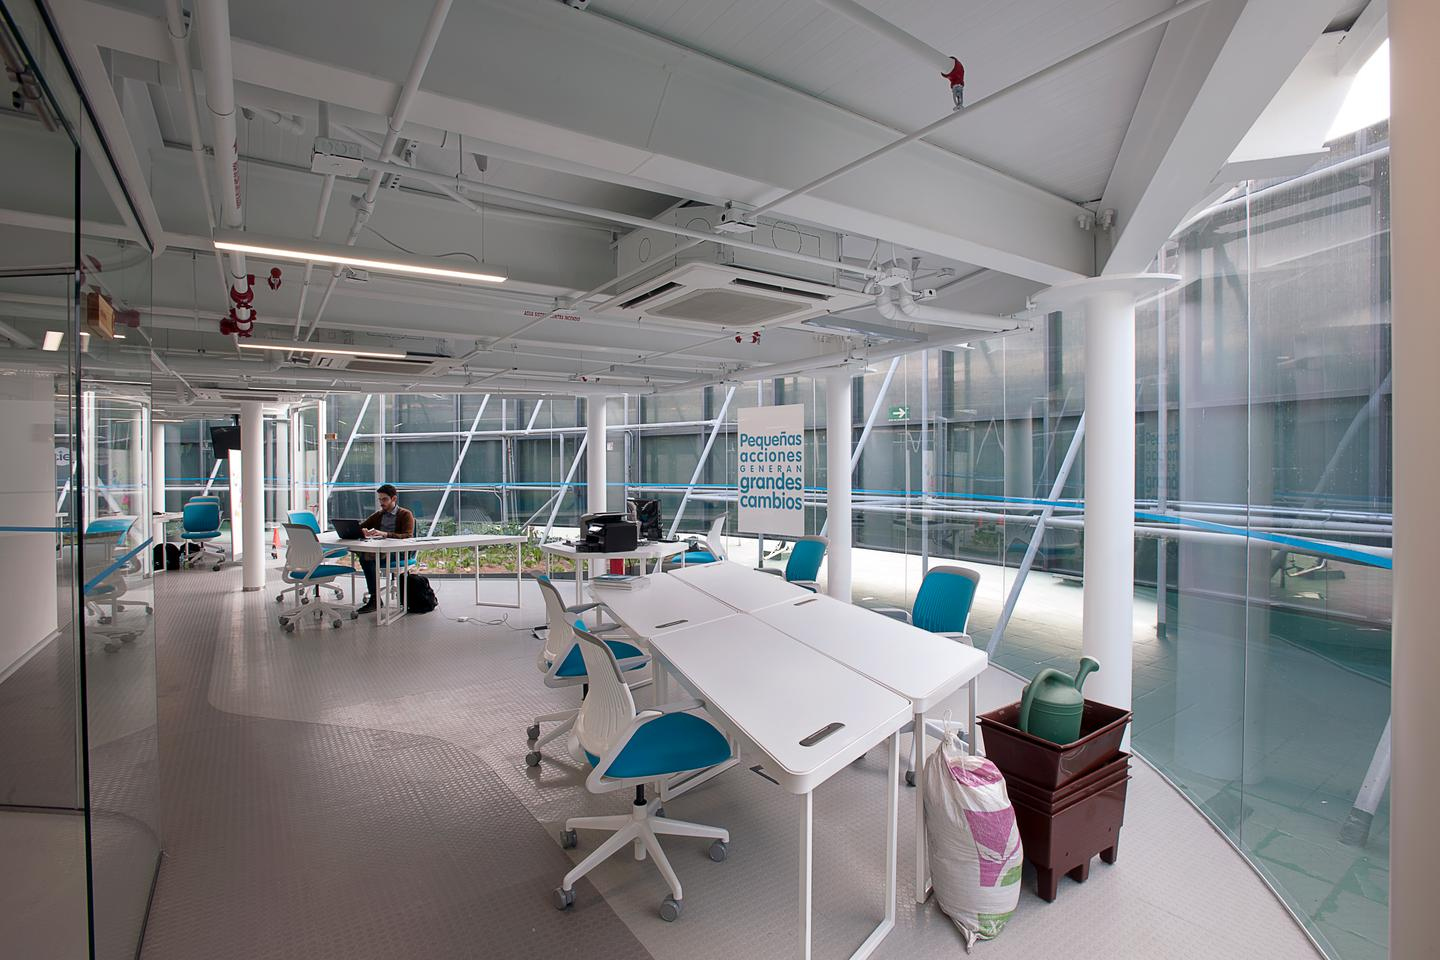 The designers built an open office space filled with locally-made furniture that's designed to be easily rearranged into different configurations (Credit: Jaime Navarro; Courtesy Rojkind Arquitectos)